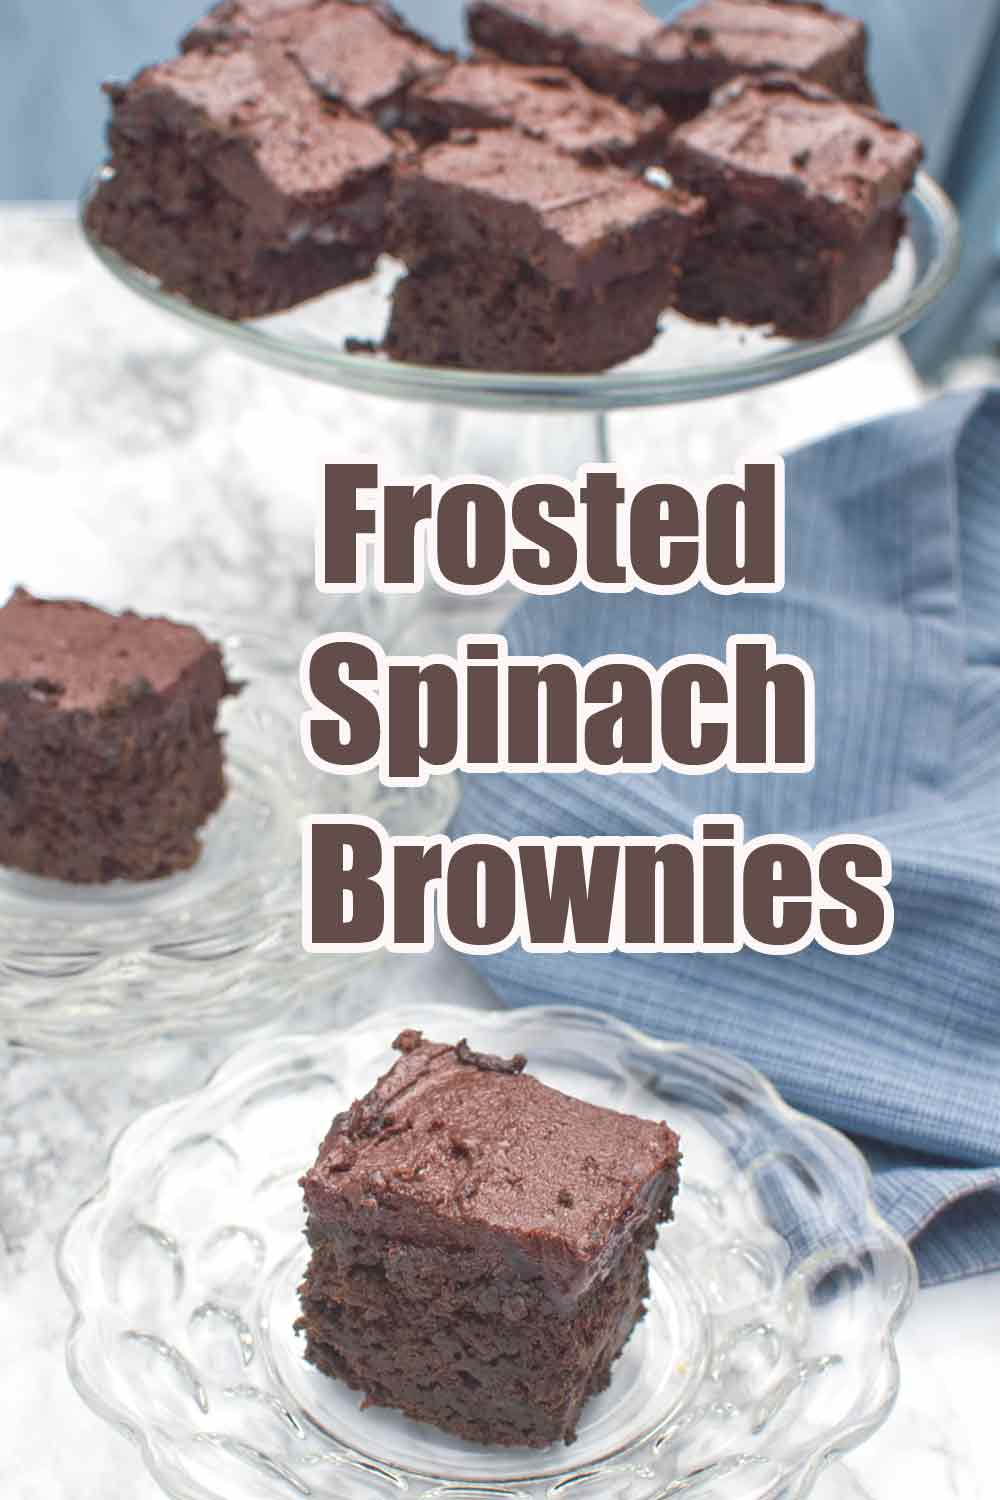 Frosted Spinach Brownies